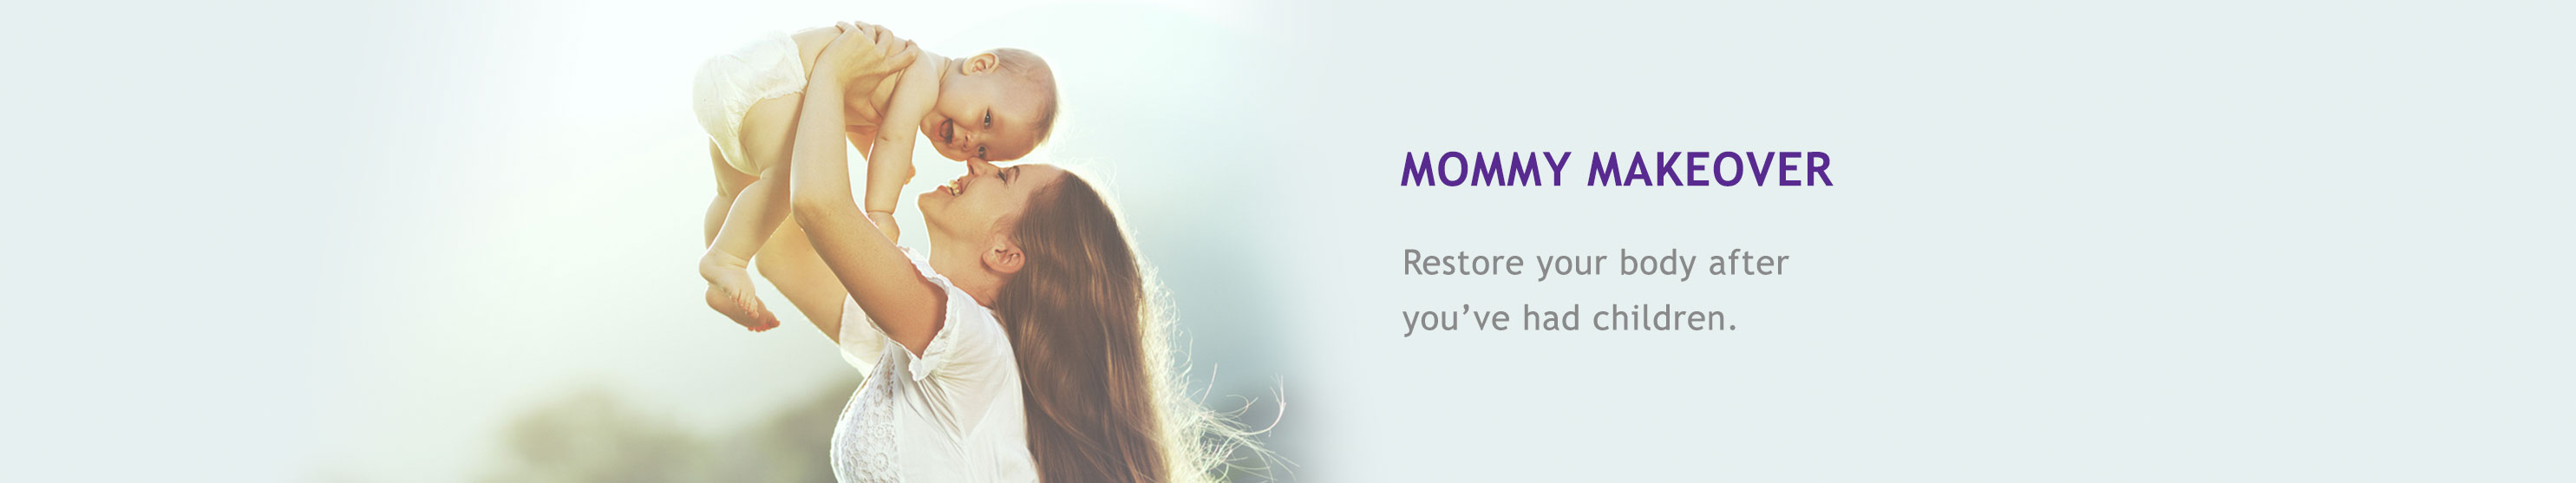 Mommy Makeover: Restore your body after you've had children